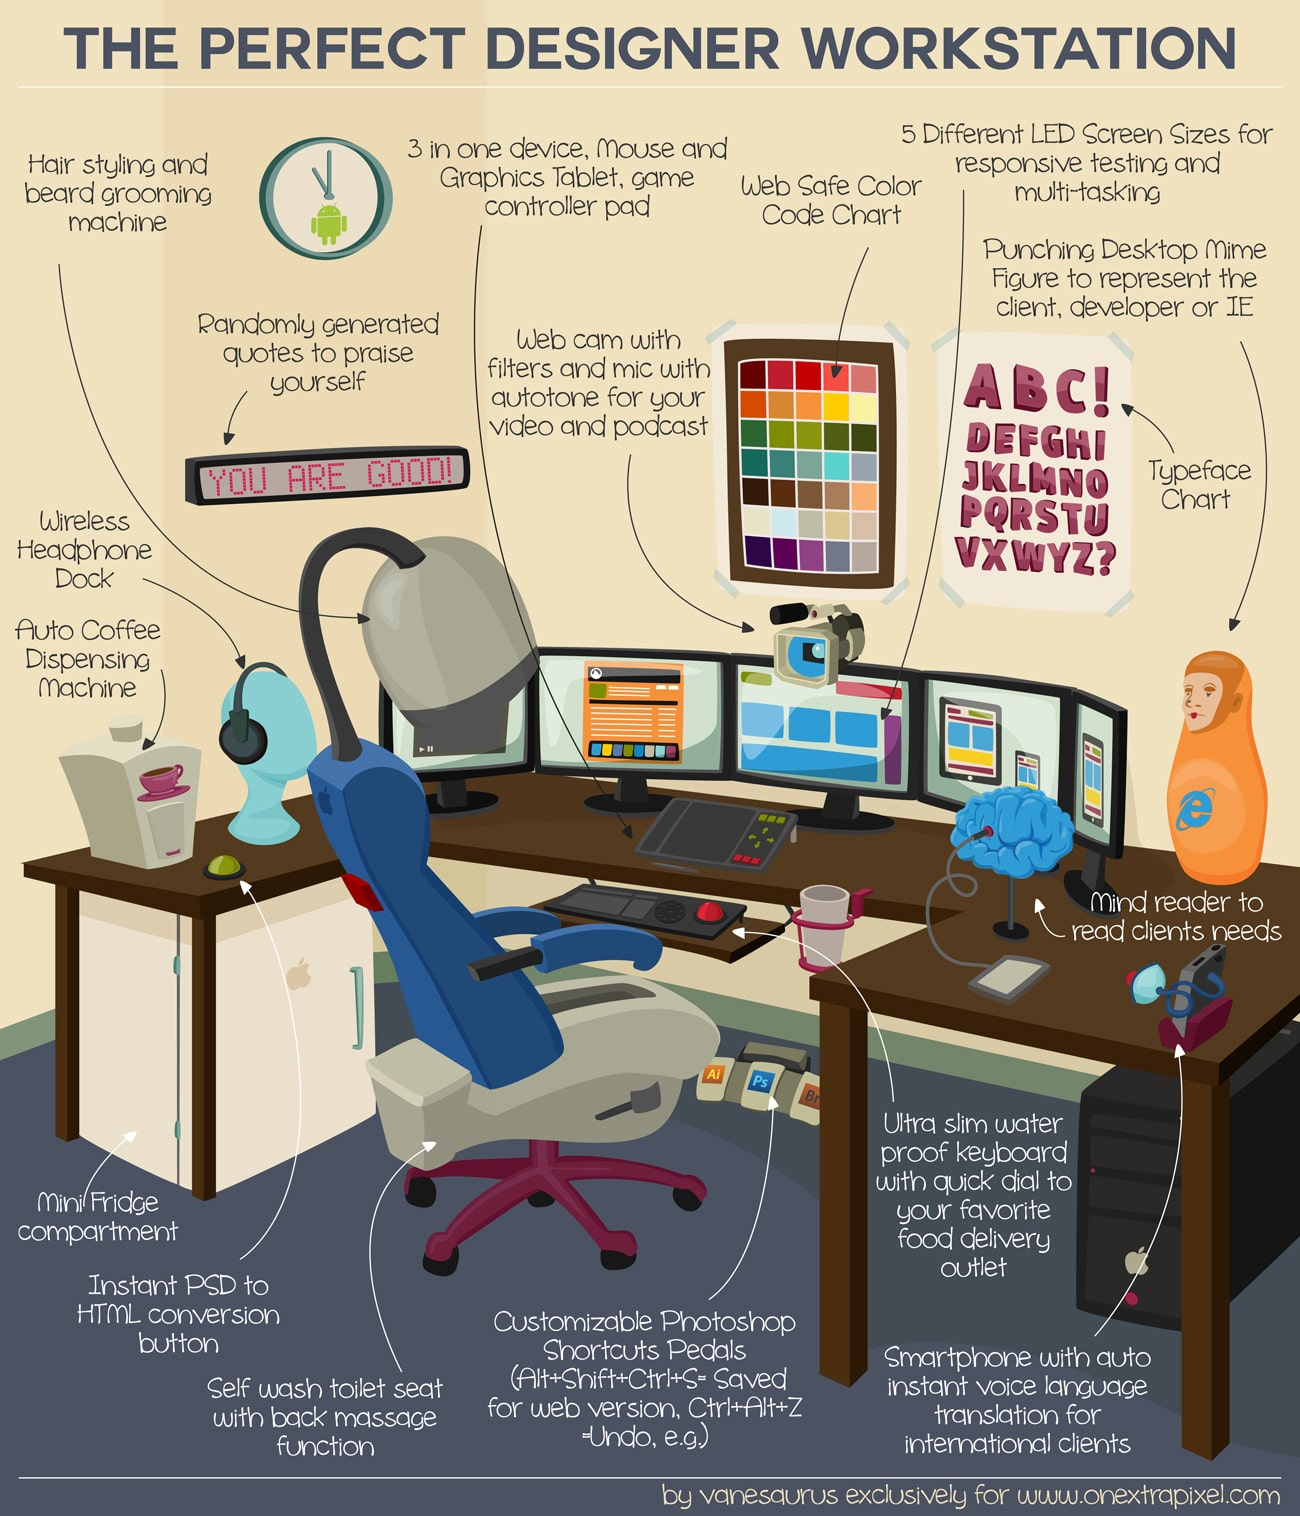 Ultimate Workstation For Designers (It Even Has Auto Coffee Dispenser)